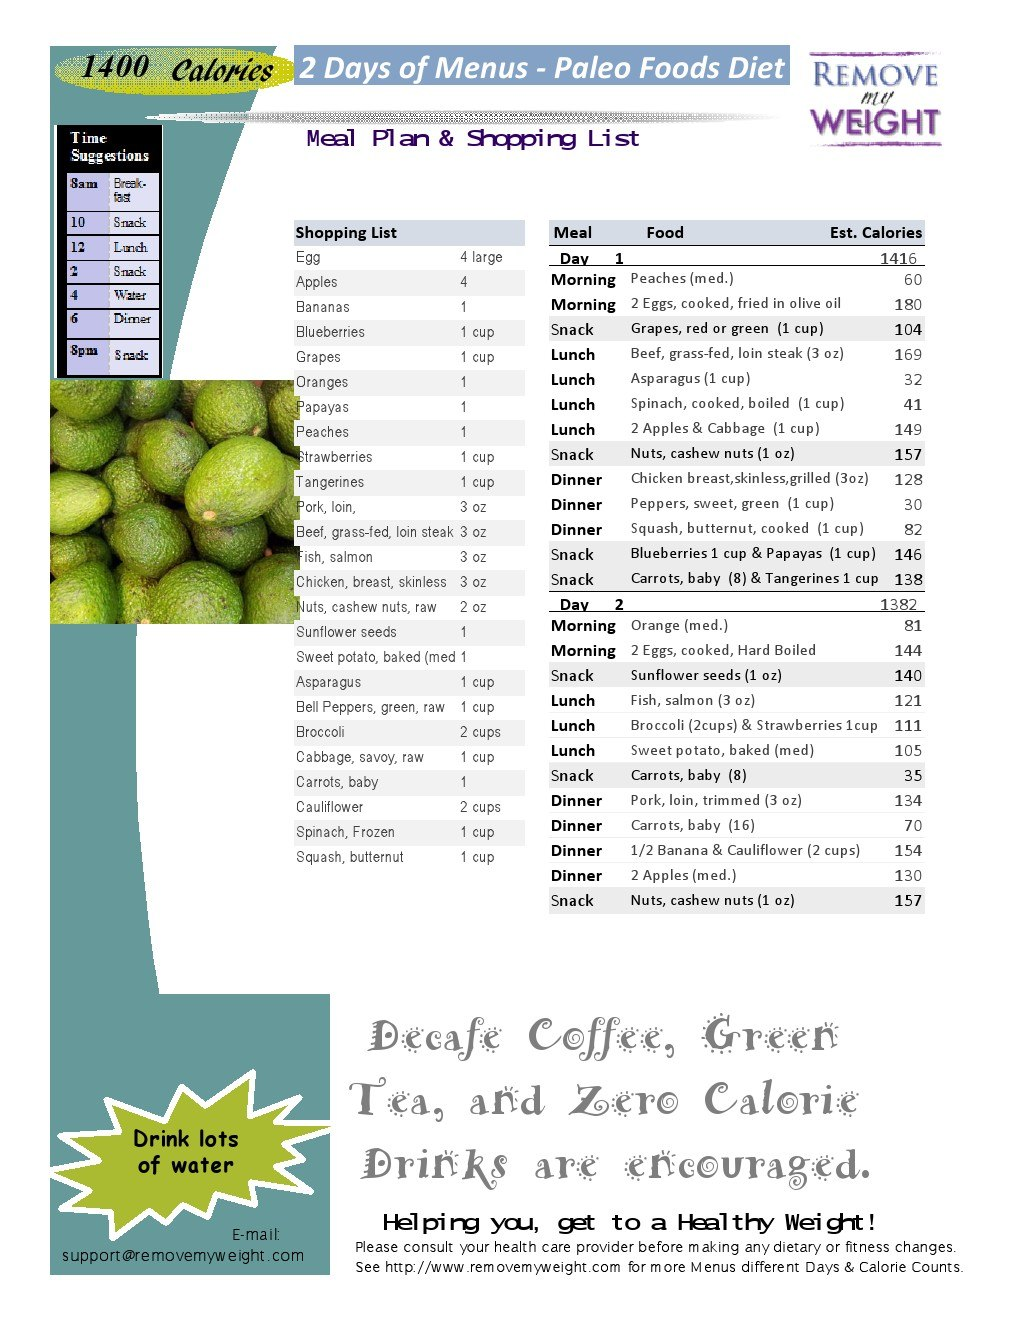 image about 1400 Calorie Meal Plan Printable known as Eating plan menu 1400 energy